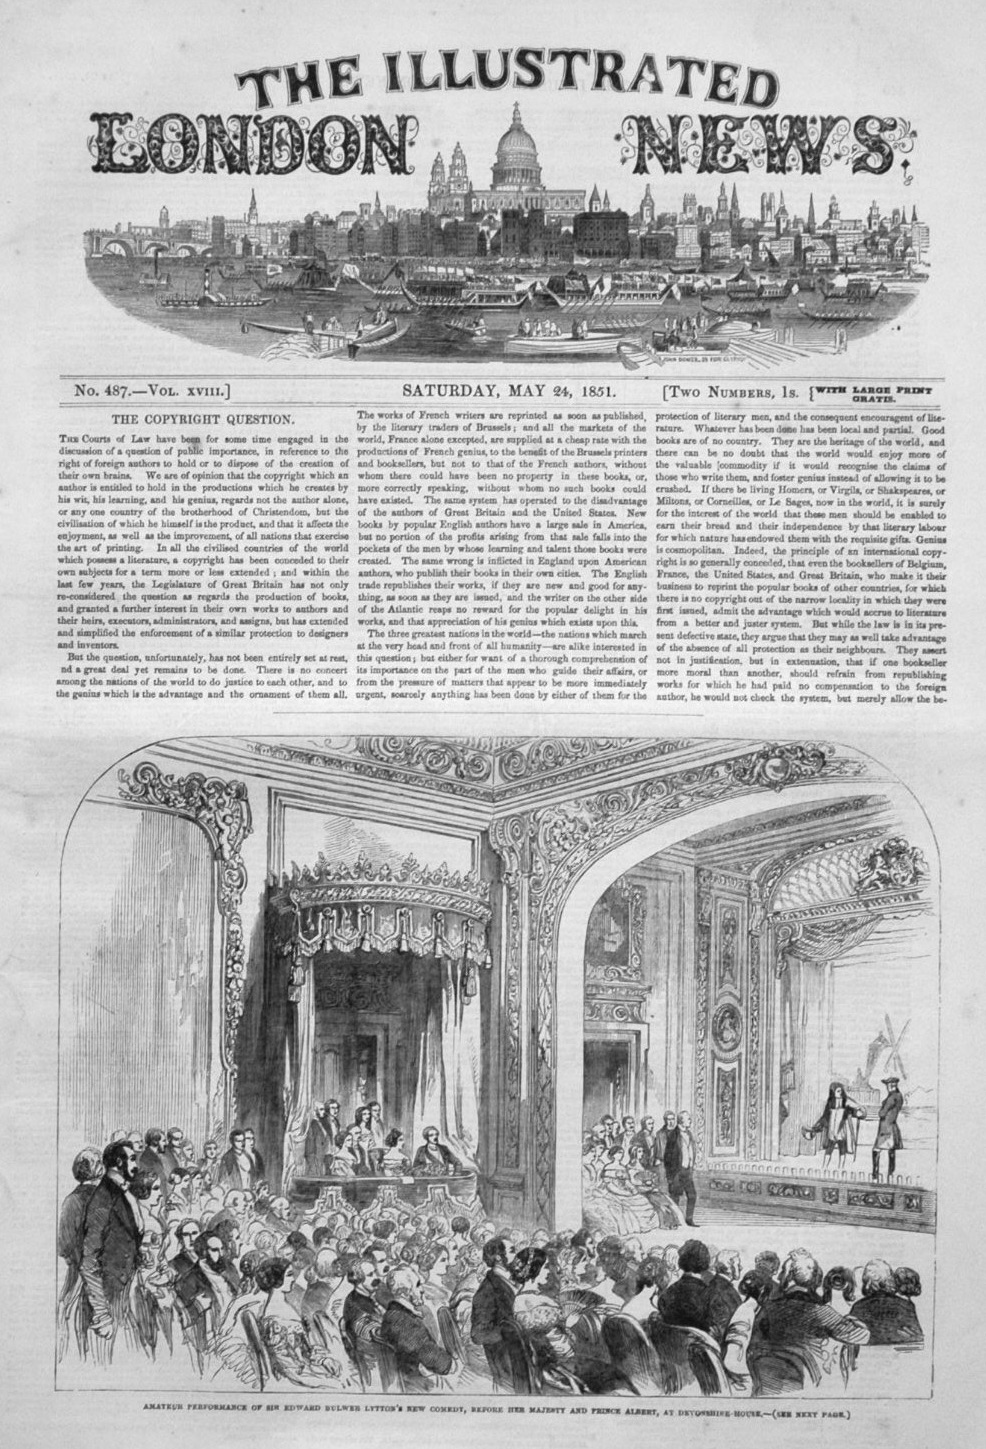 Illustrated London News May 24th 1851.